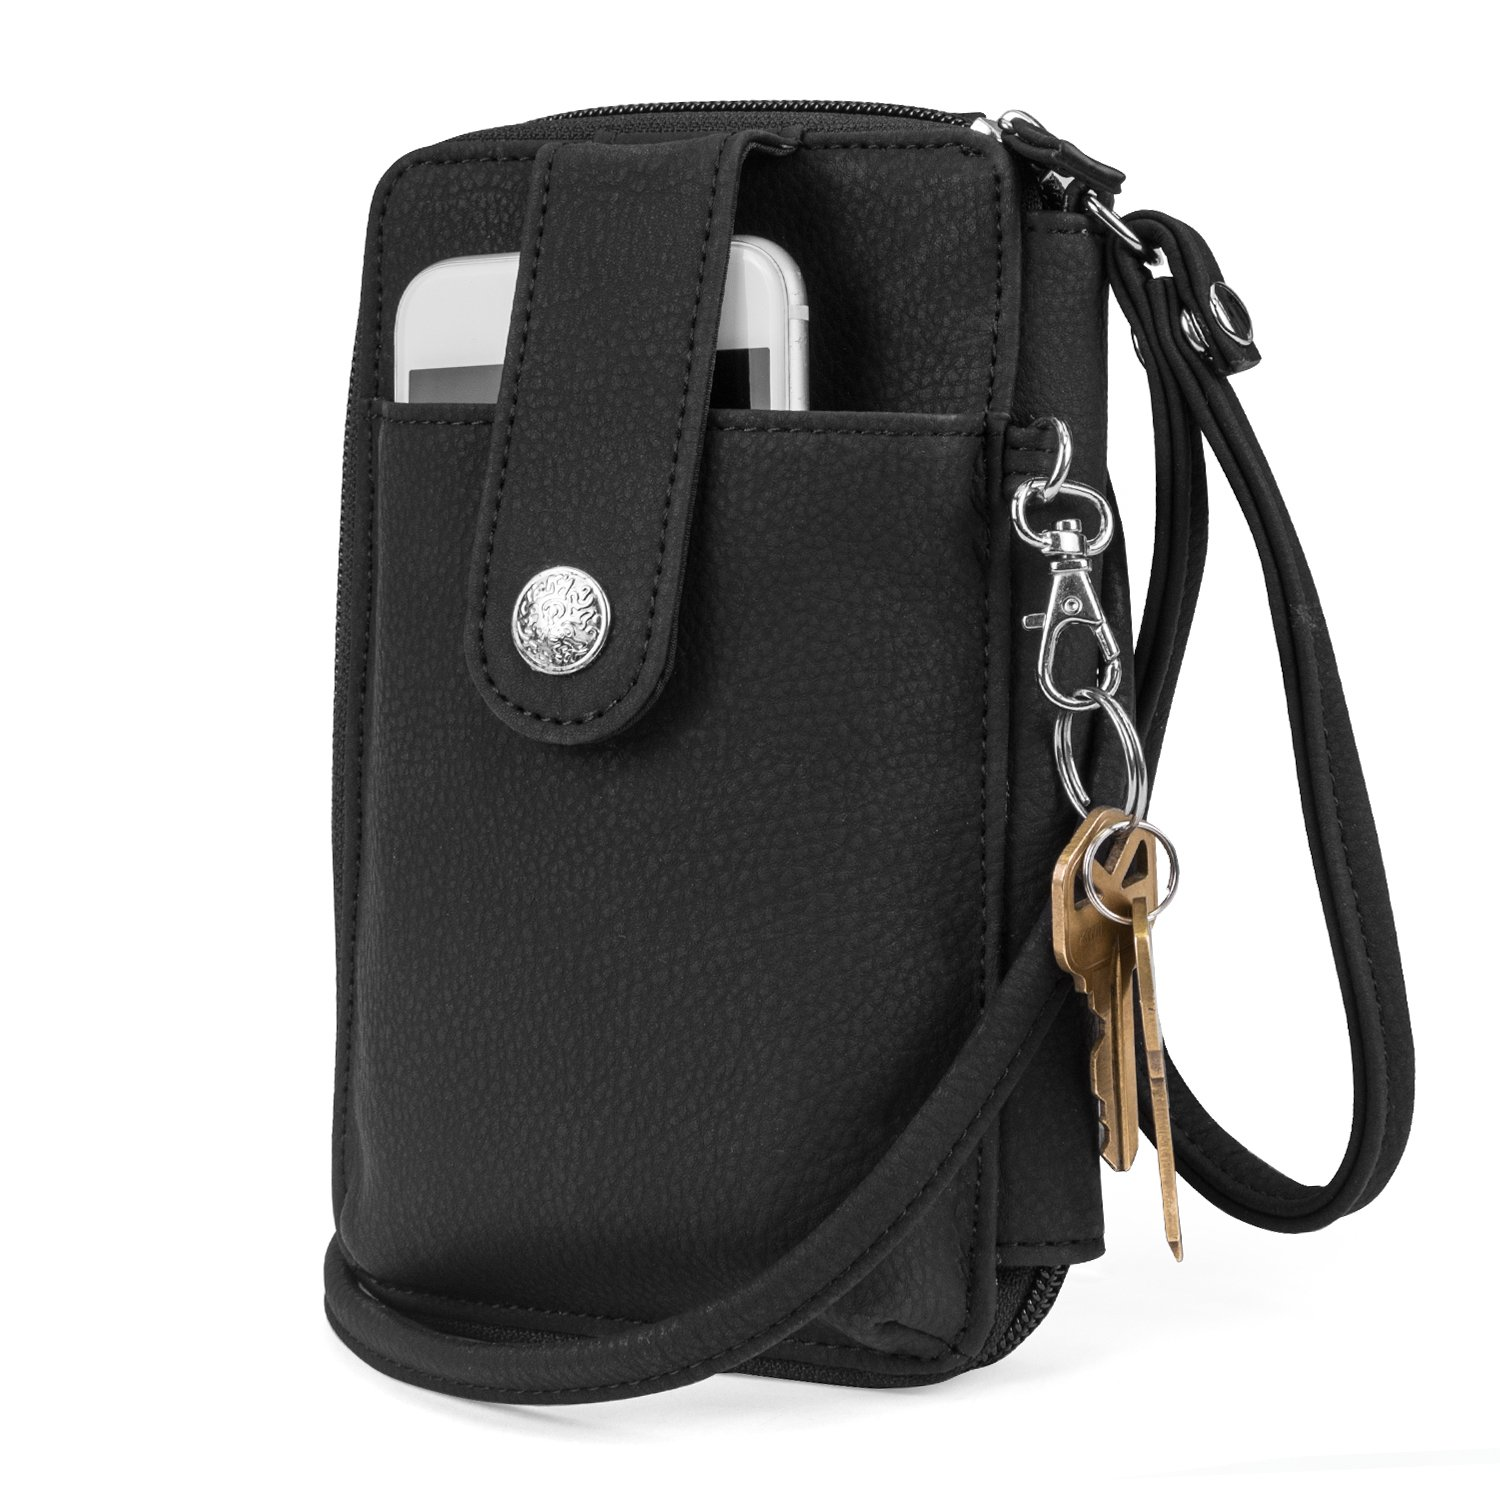 Mundi Jacqui Vegan Leather RFID Womens Crossbody Cell Phone Purse Holder Wallet (Black (Nubie))